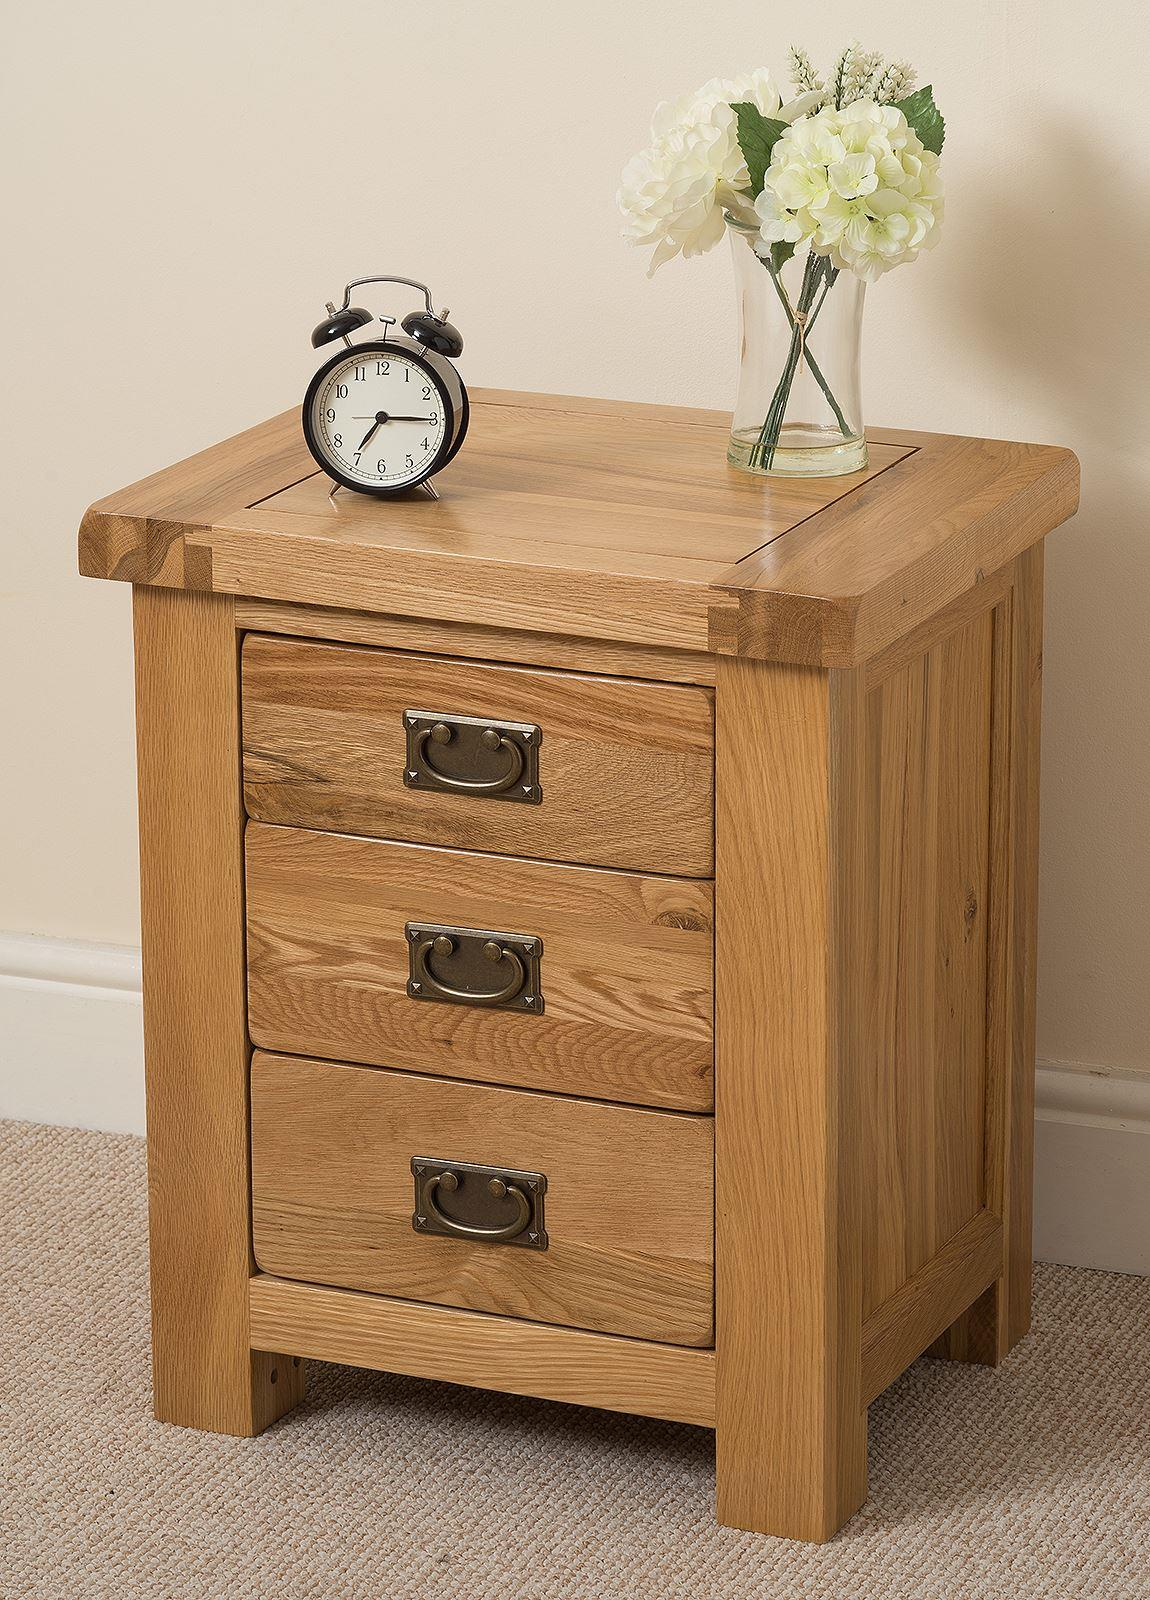 Cottage Light Solid Oak 3 Drawer Bedside Cabinet